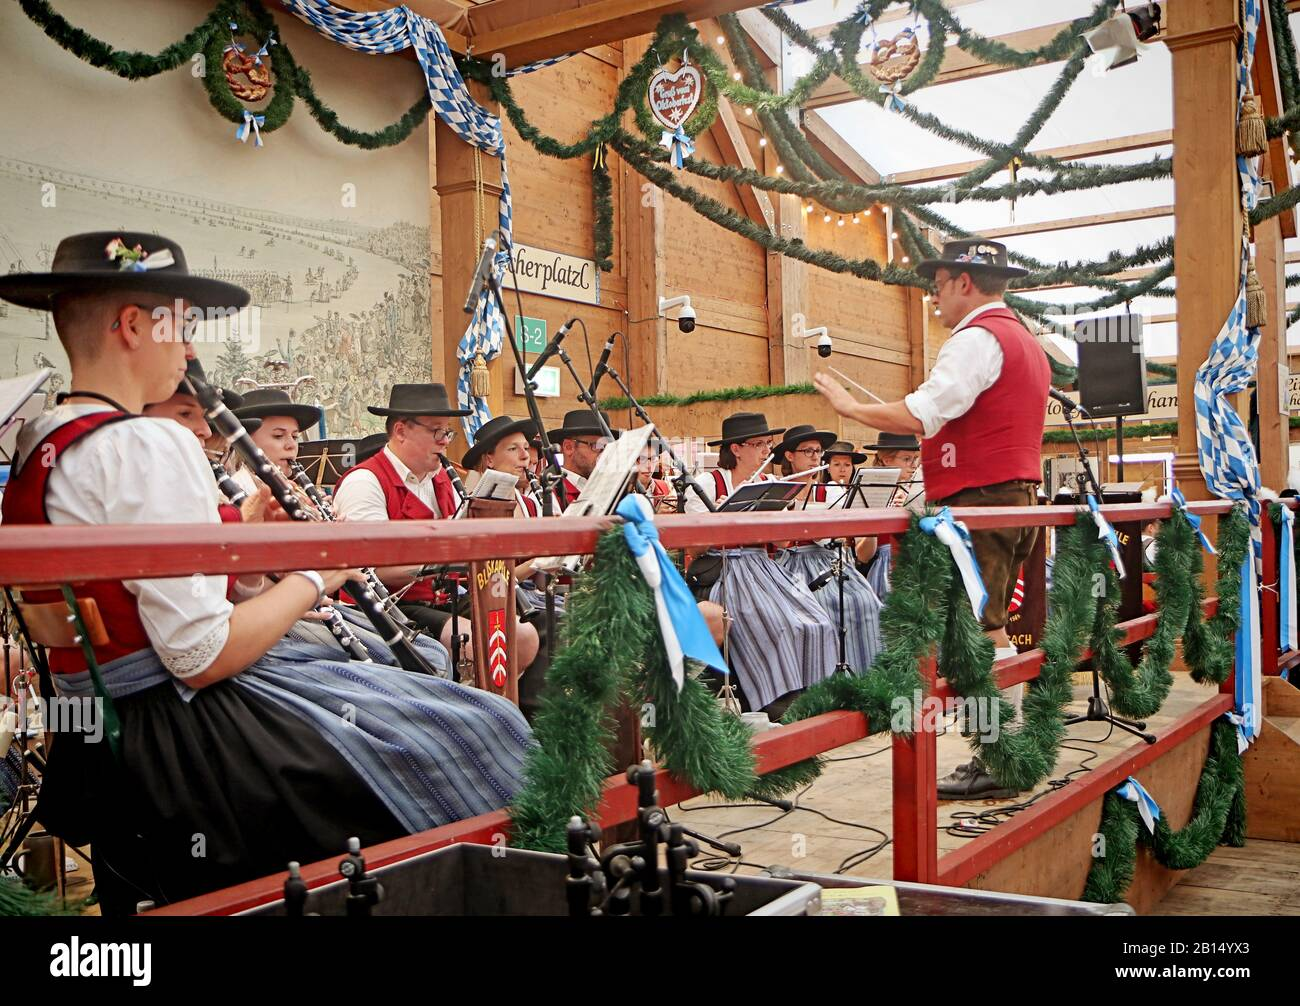 MUNICH, GERMANY - OCTOBER 1, 2019 B and playing traditional music in Bavarian costume in a beer tent of Oide Wiesn historical part of the Oktoberfest Stock Photo